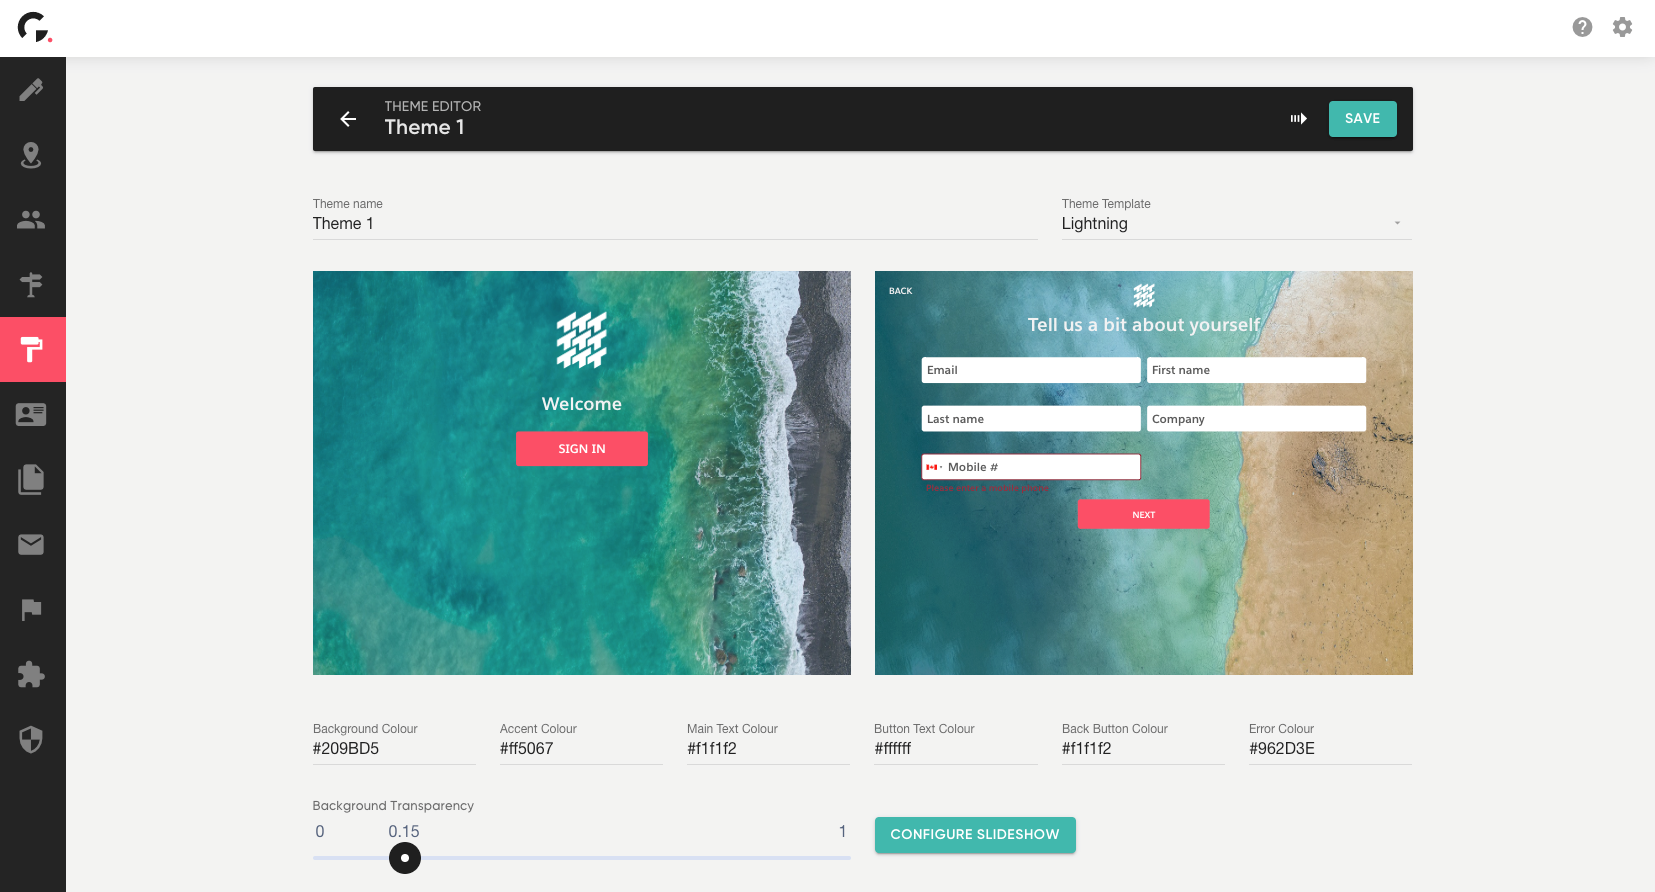 Traction Guest theme editor